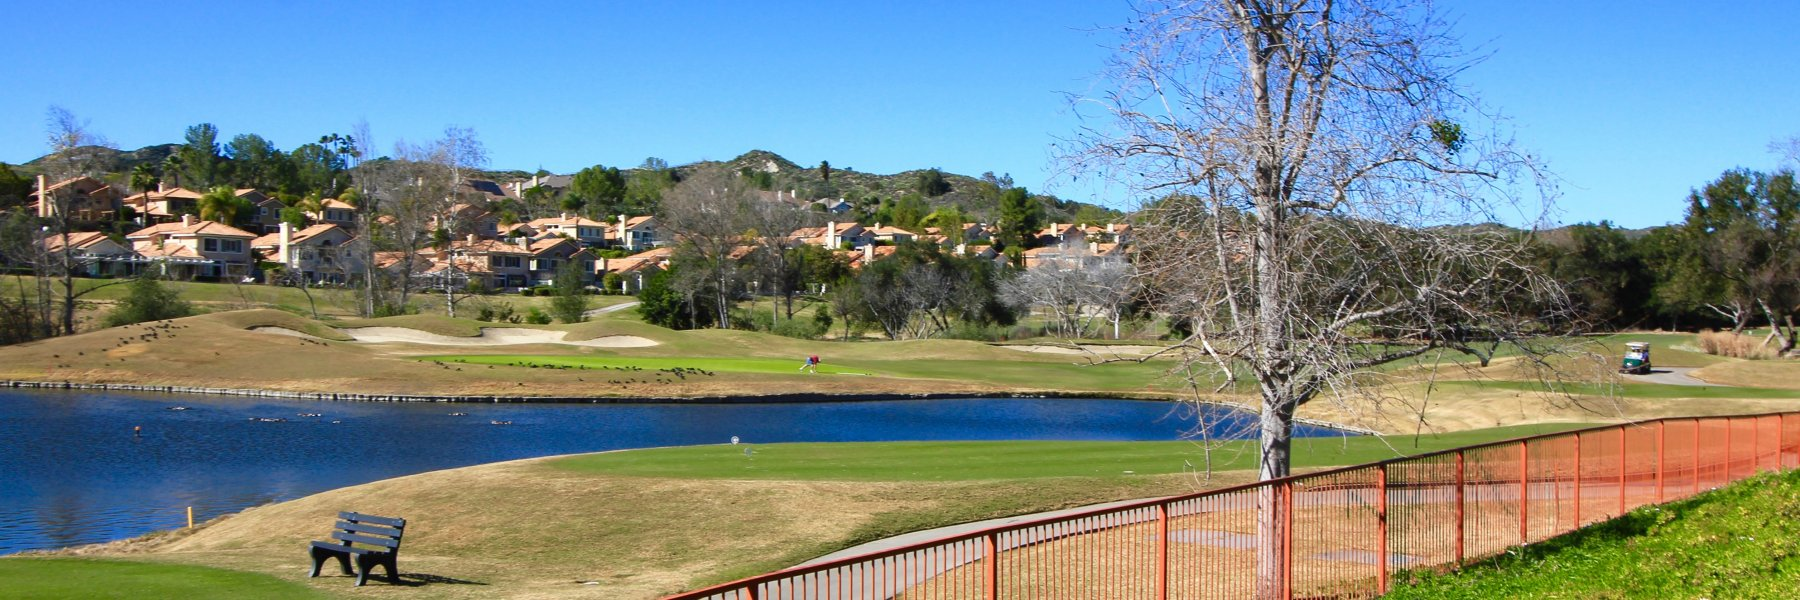 Oakmont is a community of homes in Coto de Caza, California